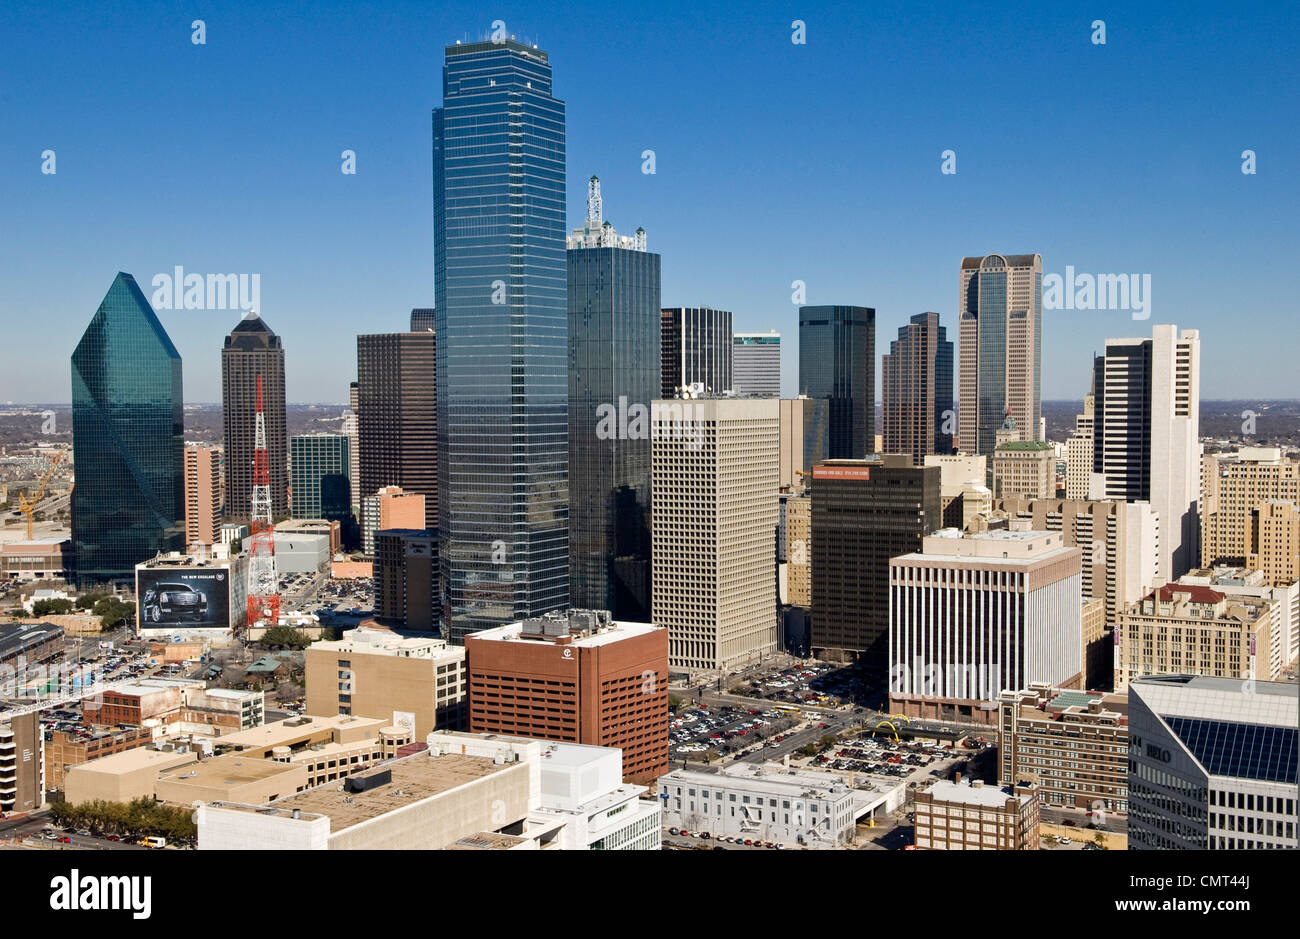 Dallas, Texas - El Skyline Foto de stock